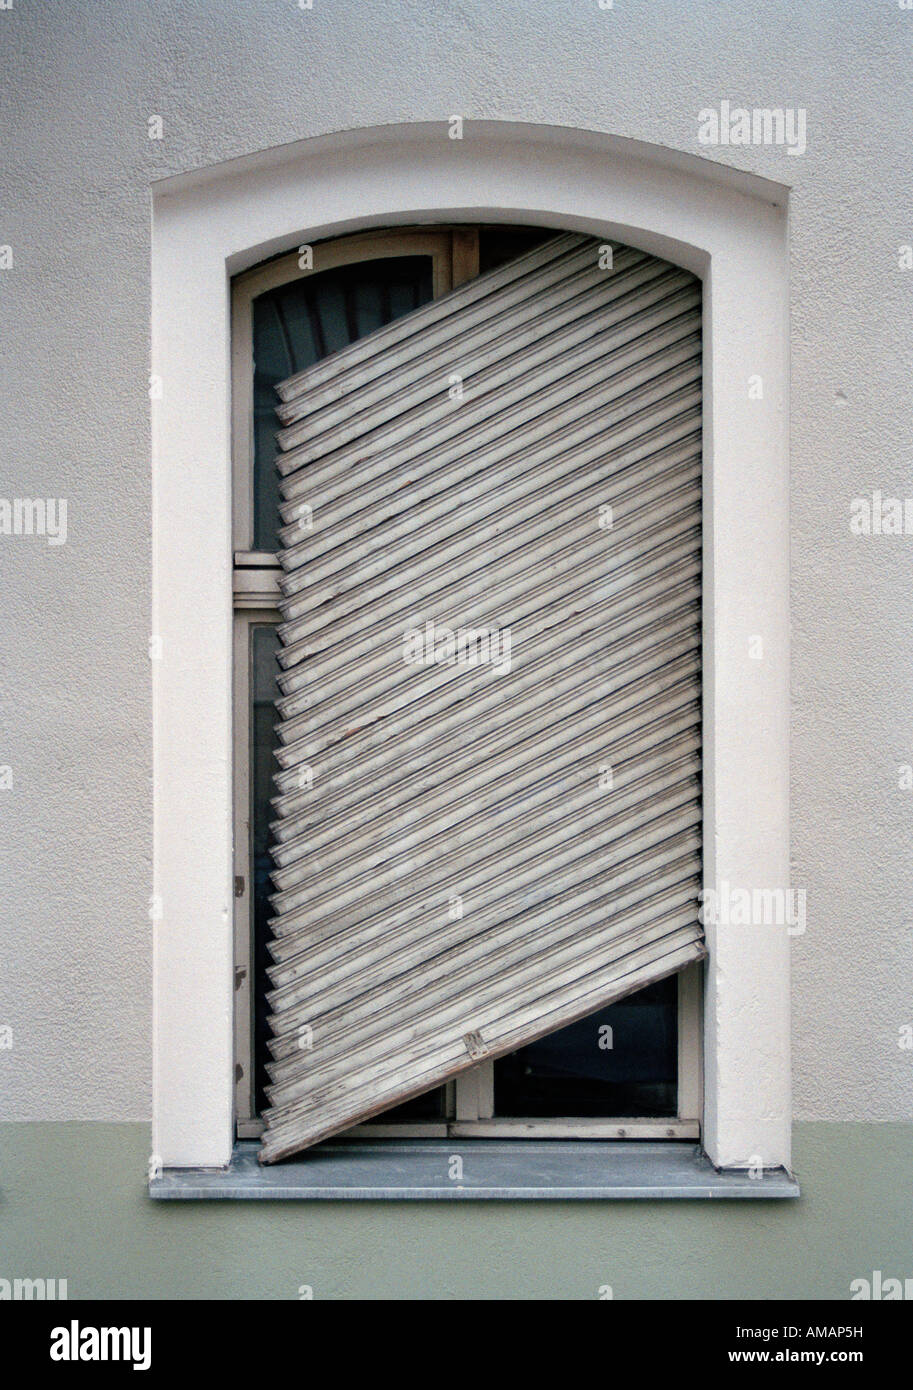 A broken shutter hanging at slanted angle on a window - Stock Image